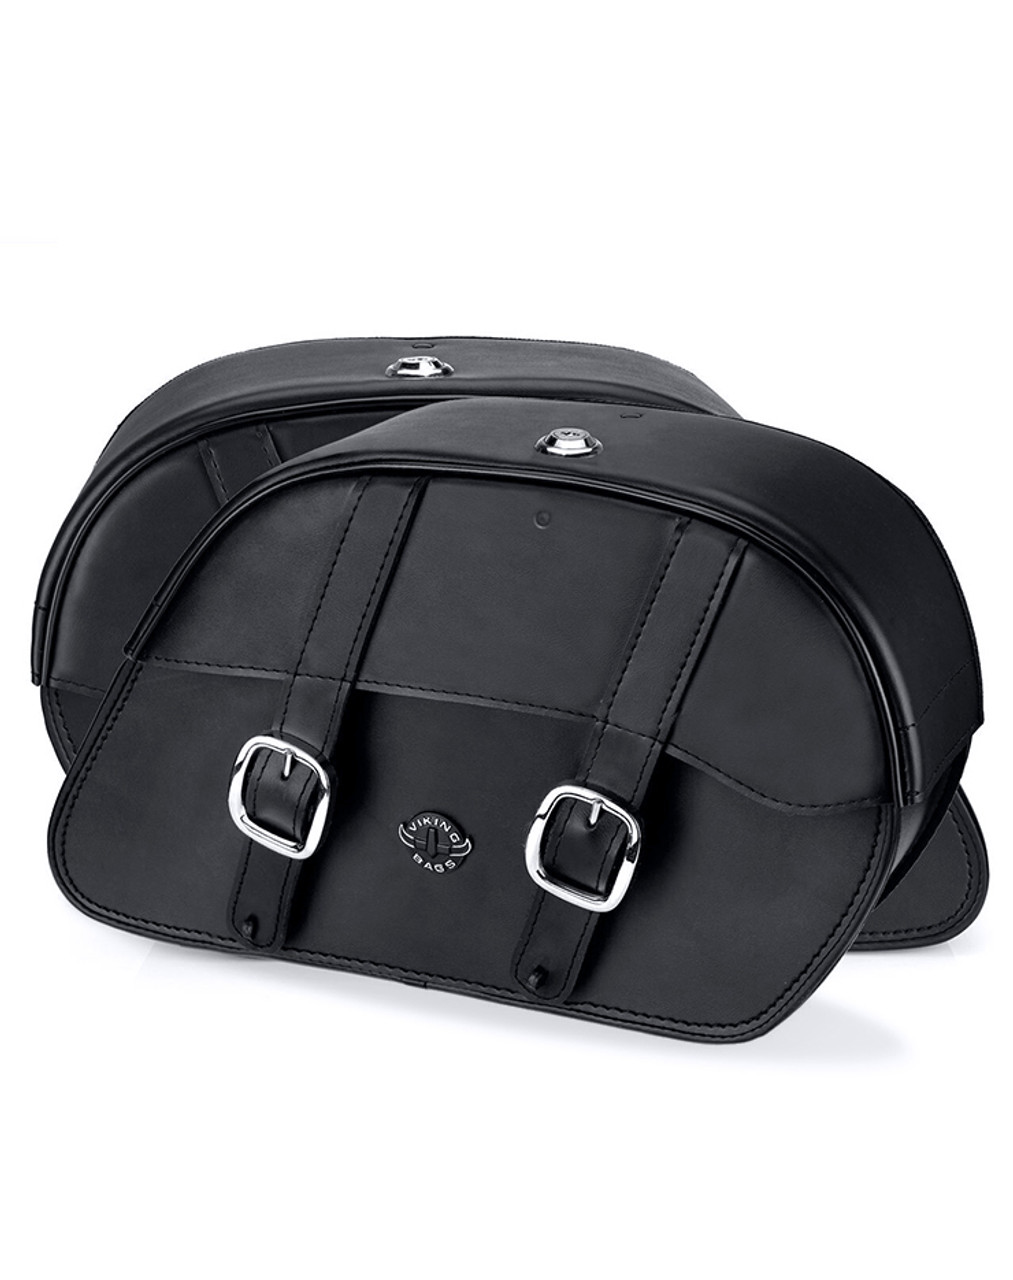 VikingBags Skarner Large Double Strap Victory Boardwalk Leather Motorcycle Saddlebags Both Bags View